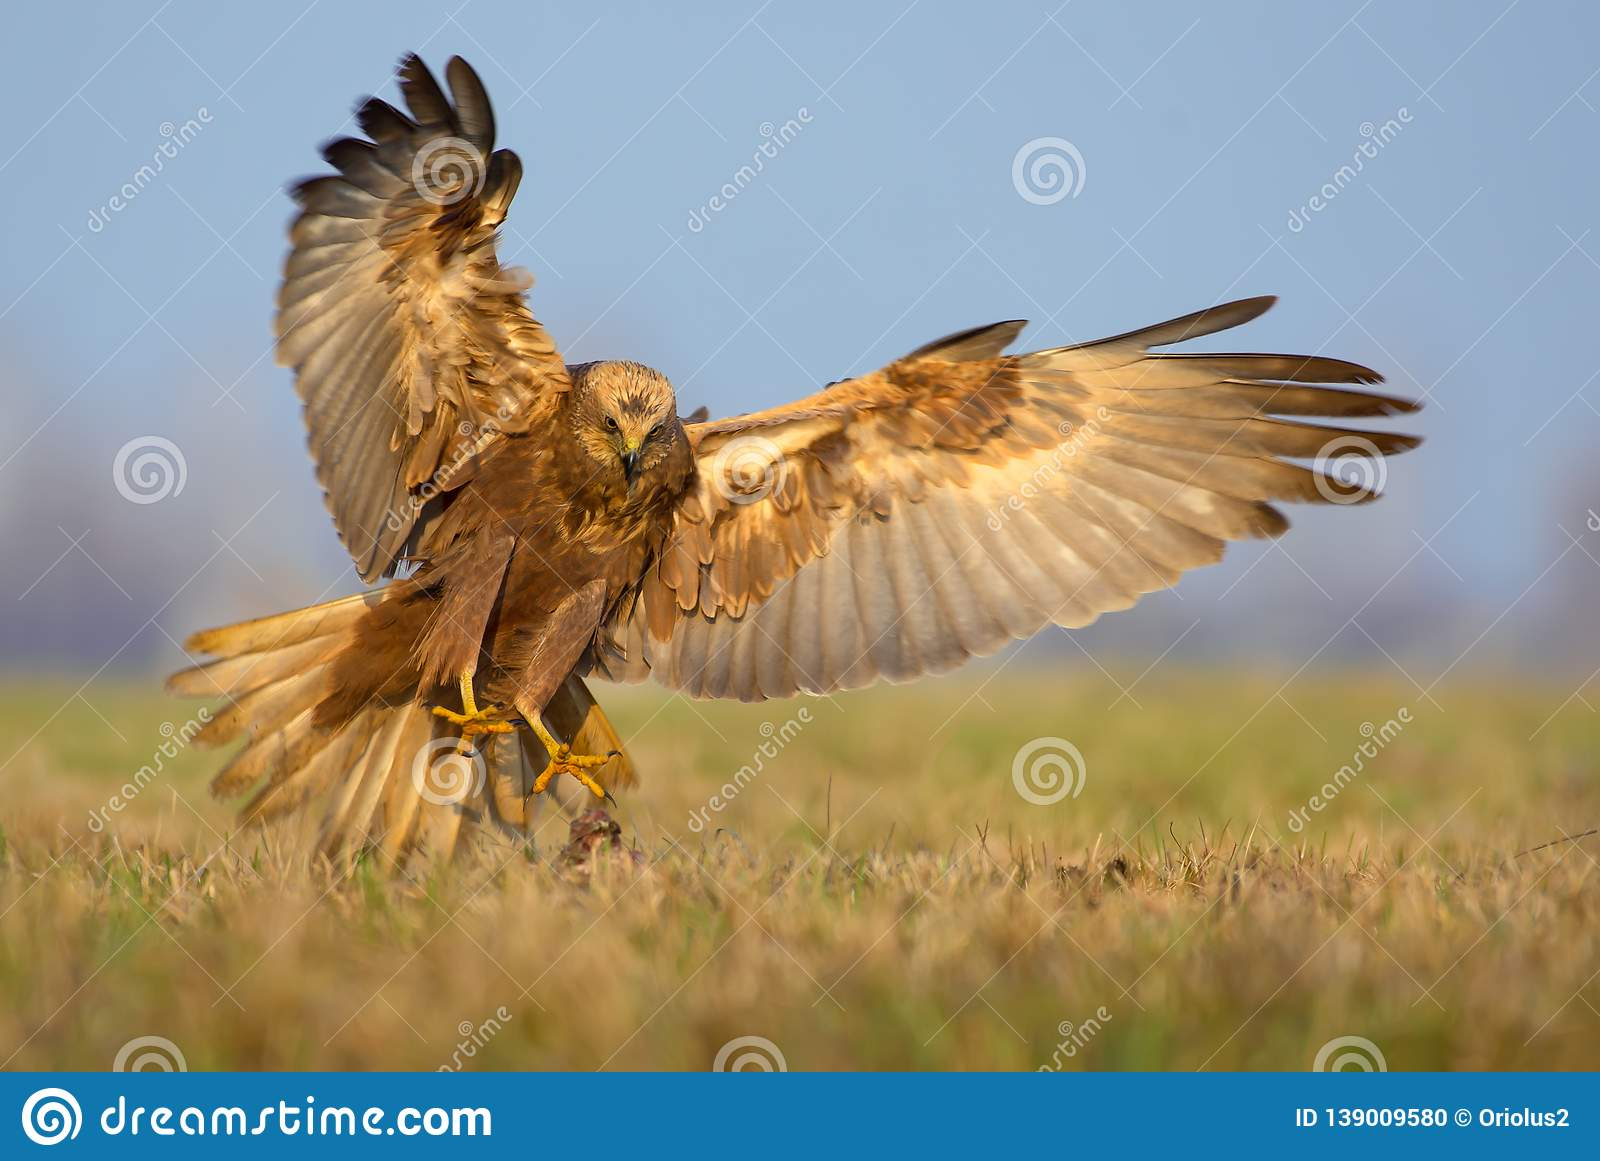 Western Marsh Harrier attack in very fast motion flight with spreaded talons, tail and wings